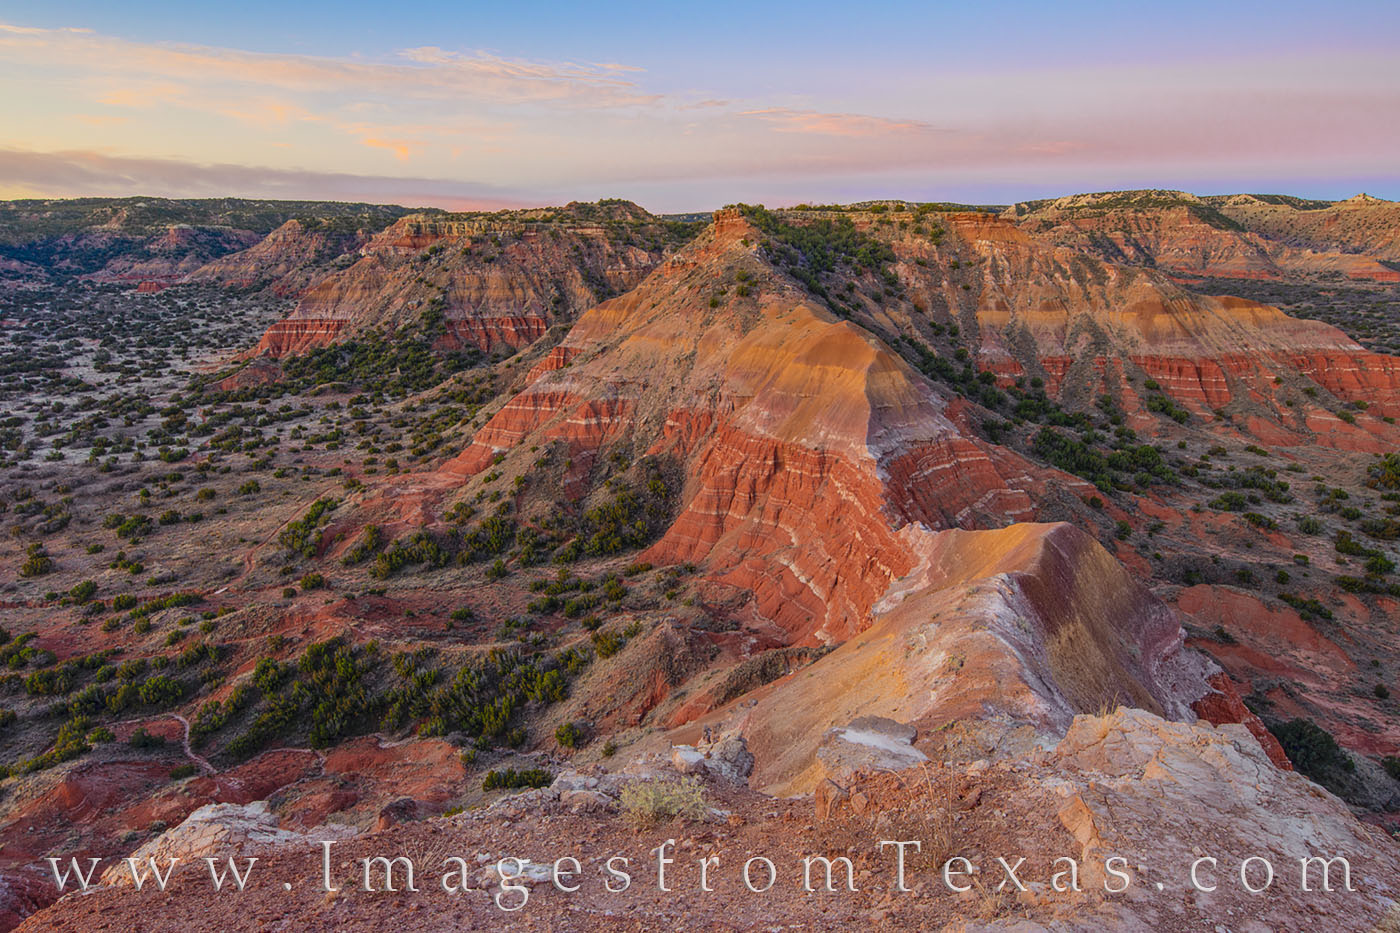 palo duro, capitol peak, sunrise, morning, summit, orange, state park, hiking, climbing, photo